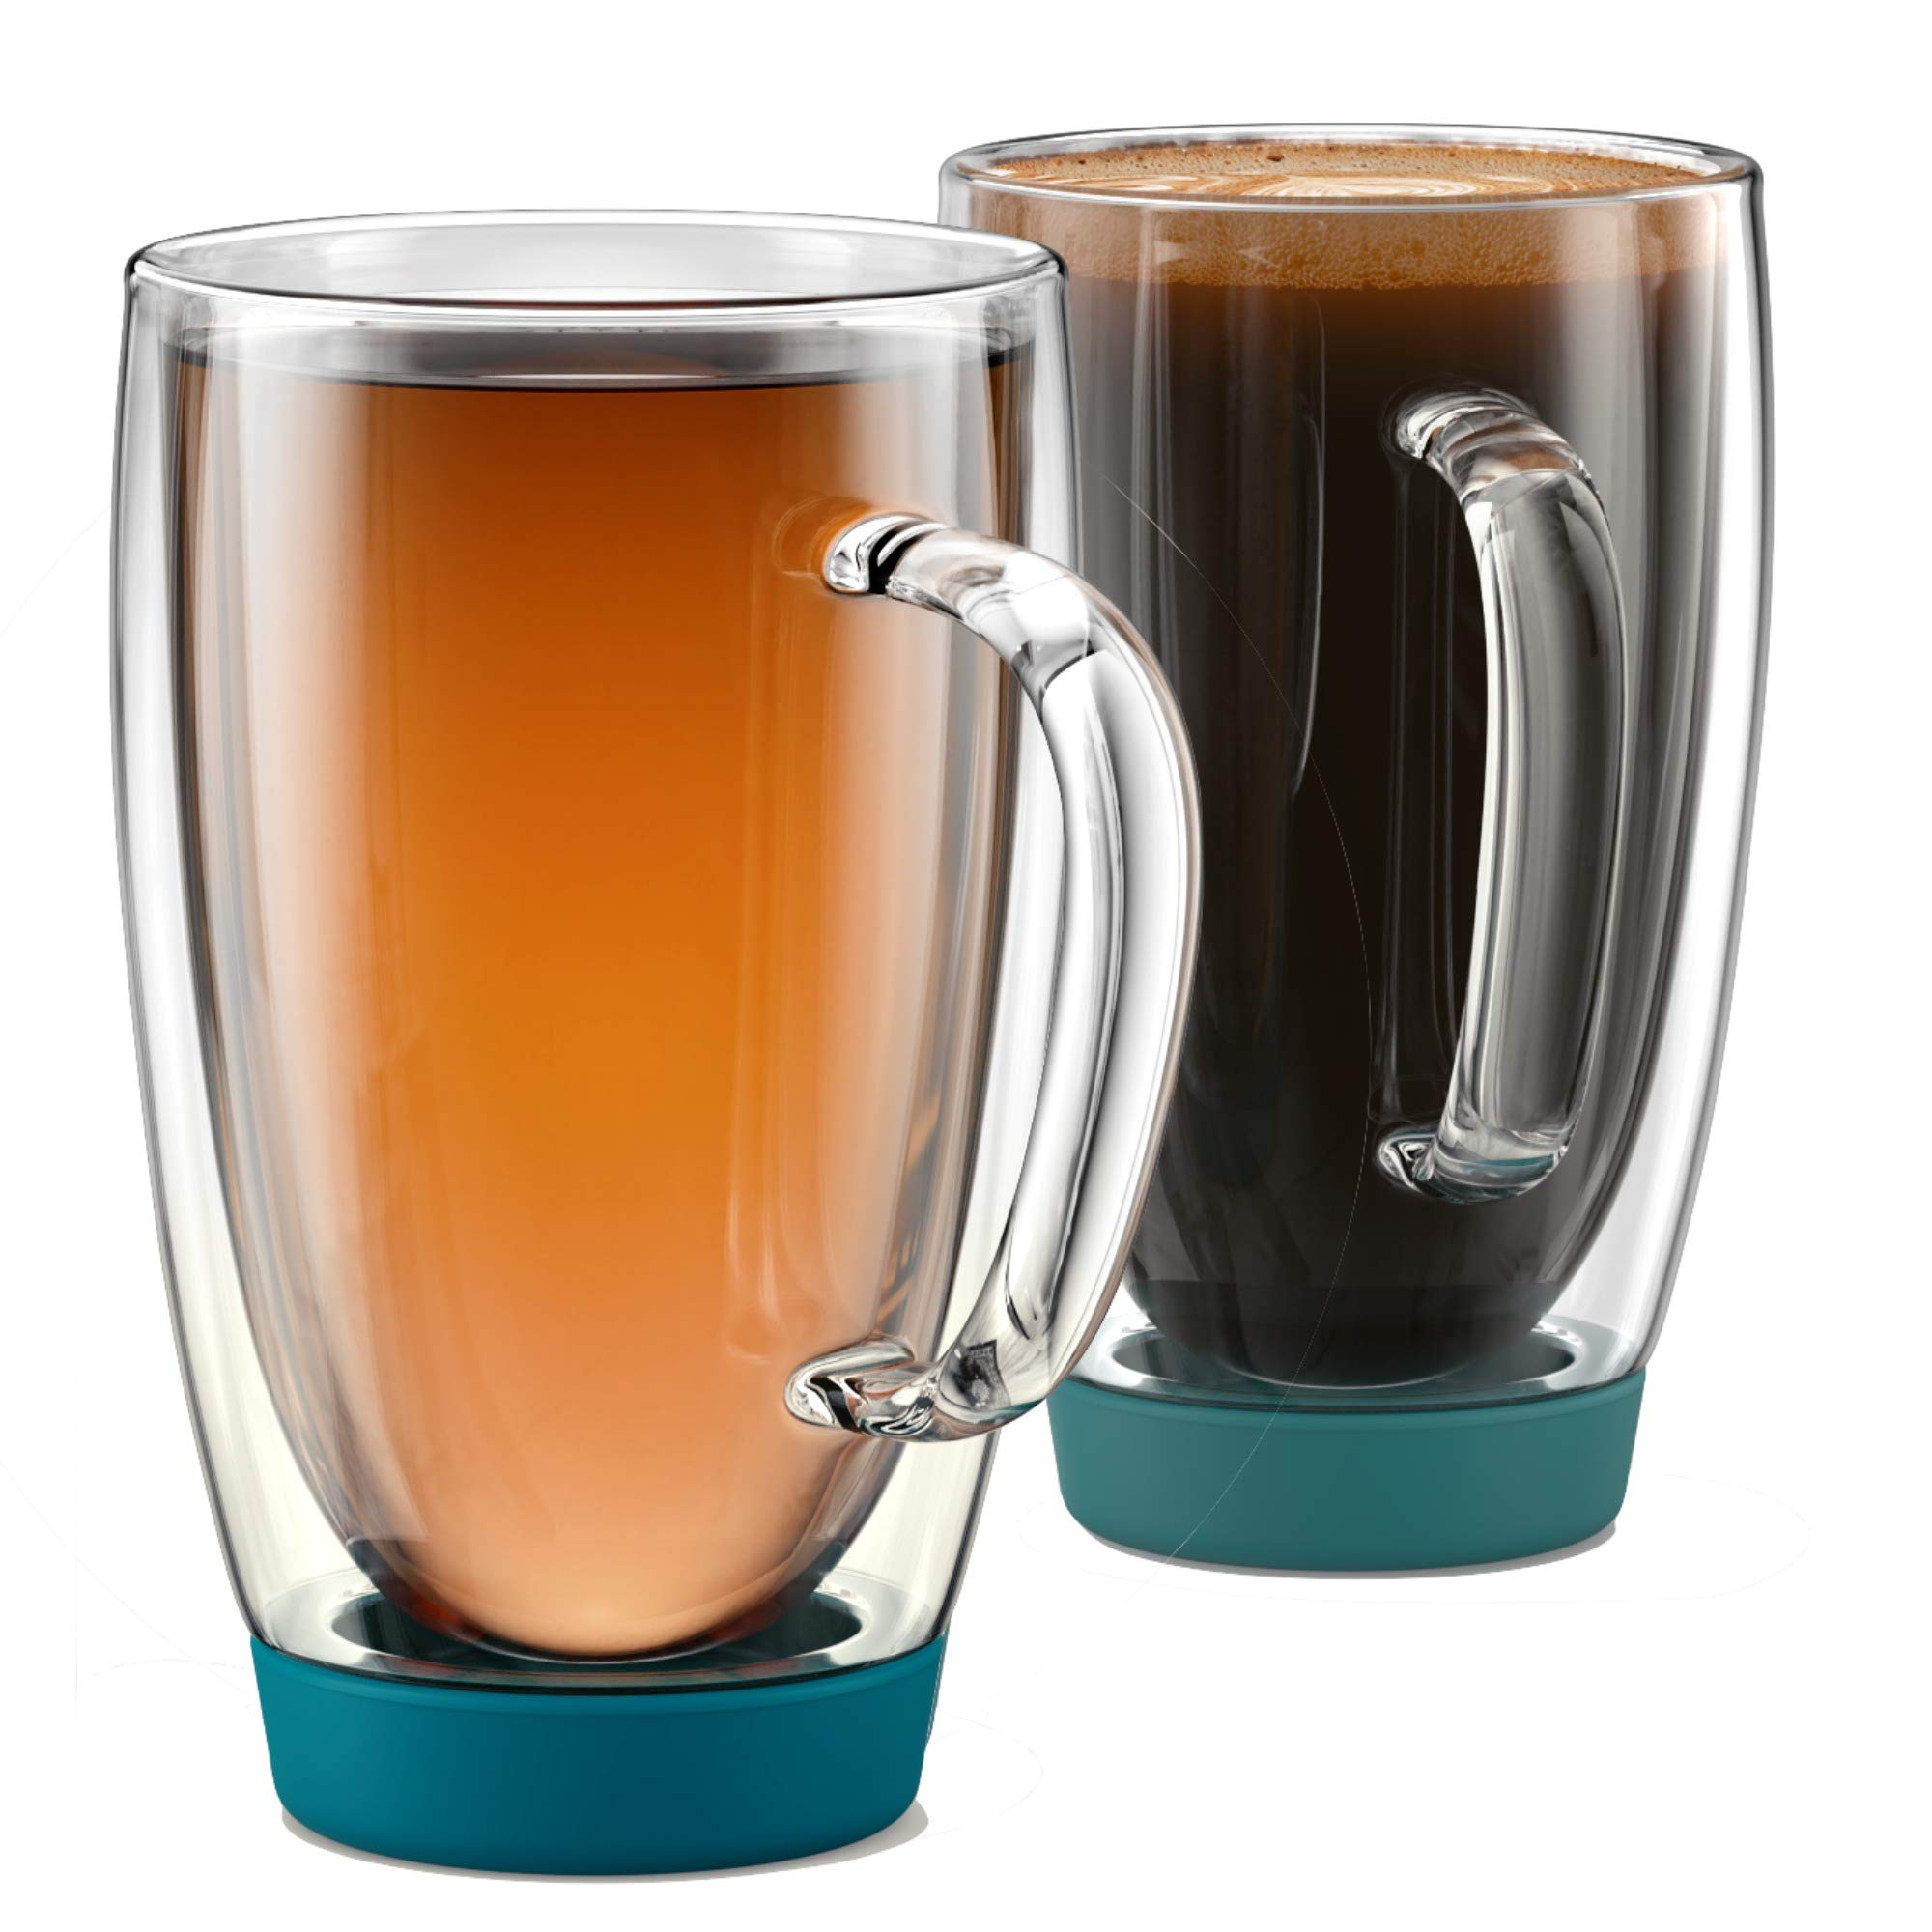 Stone & Mill Set of 2 Large Double Walled Insulated Non Slip Glass Coffee Mugs, Silicone Bottom, Thermo Glassware, Gift-boxed - AM-13-SB (Turquoise) 15 ounce